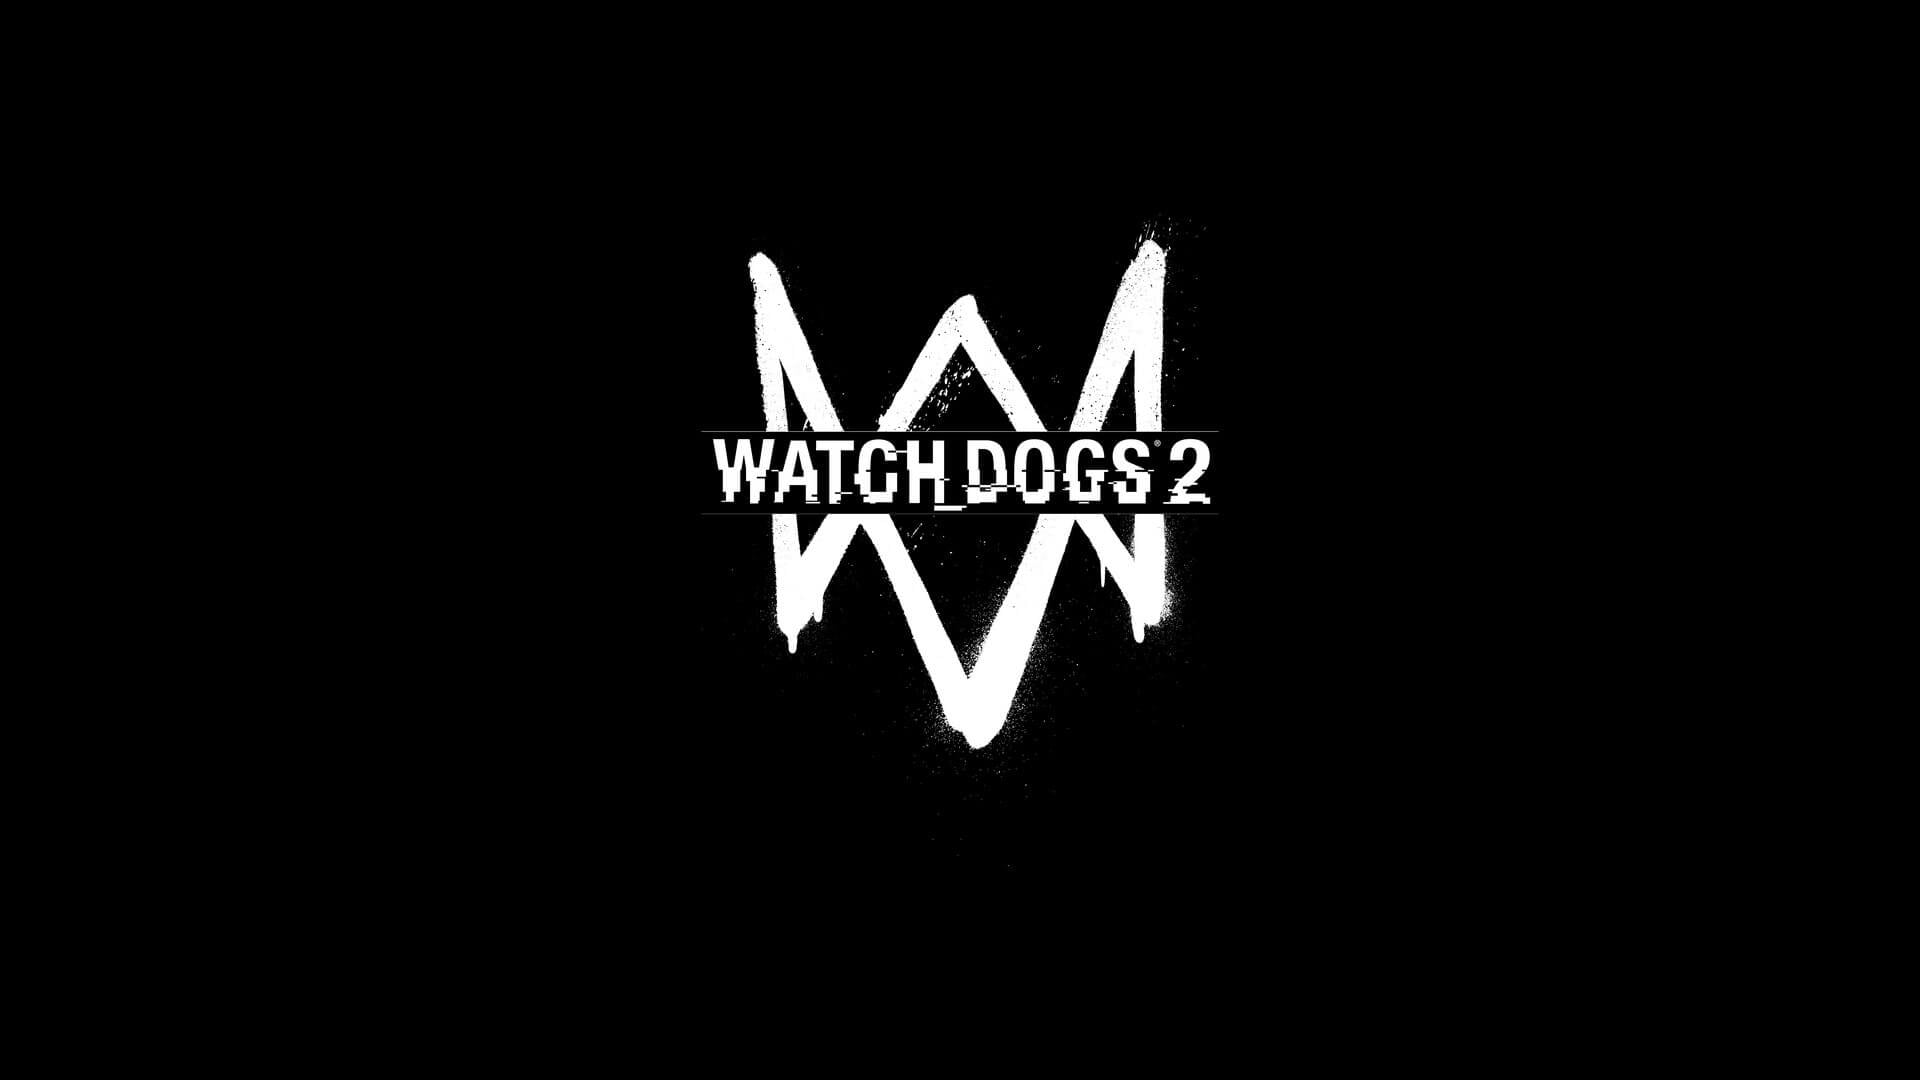 Watch Dogs 2 Wallpaper 1920x1080: Watch_Dogs 2 Review